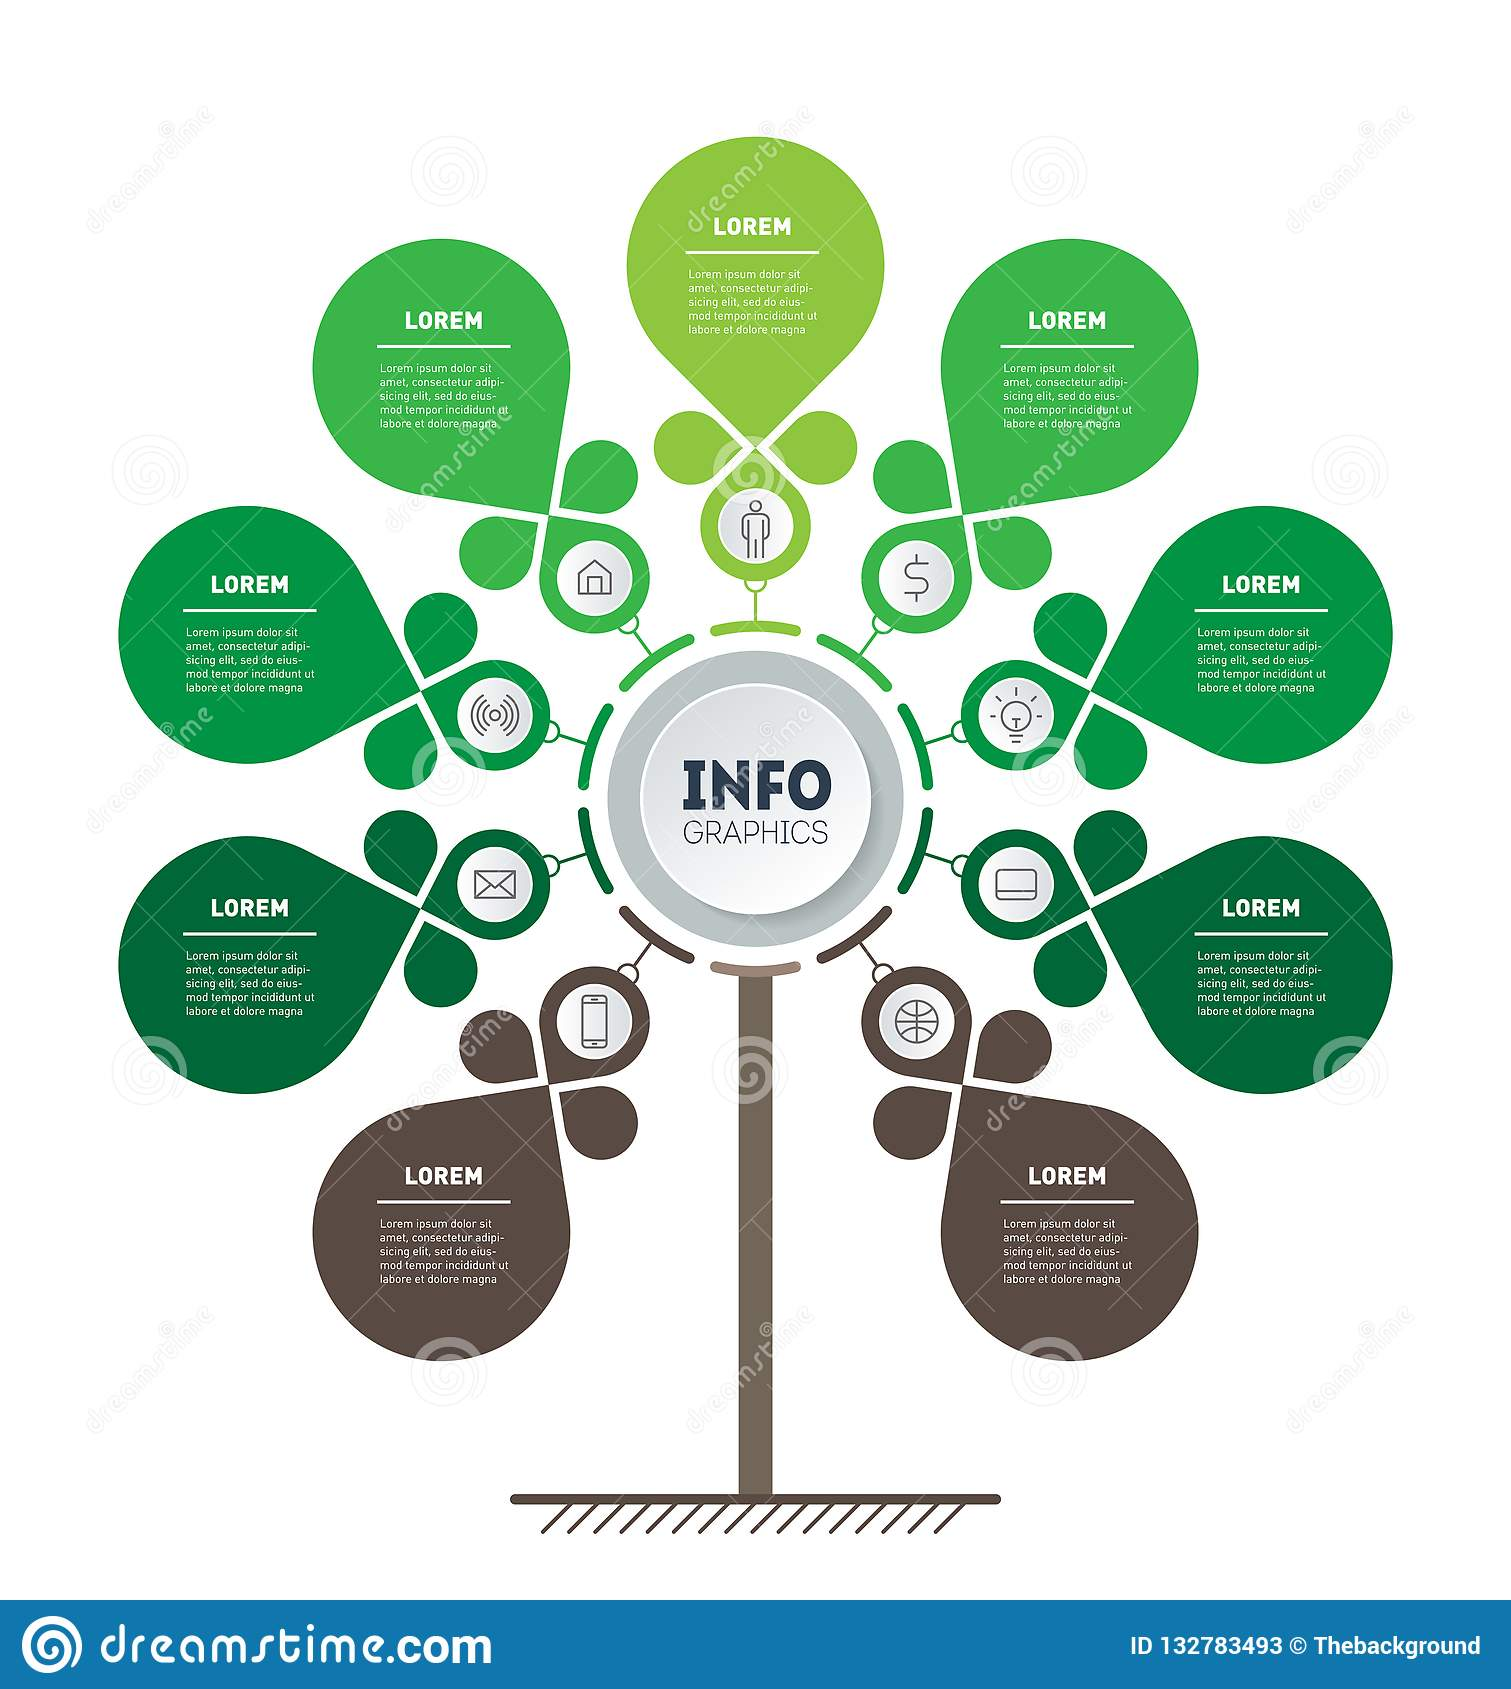 Ecology Infographics  Tree Of Development And Growth Of The Eco